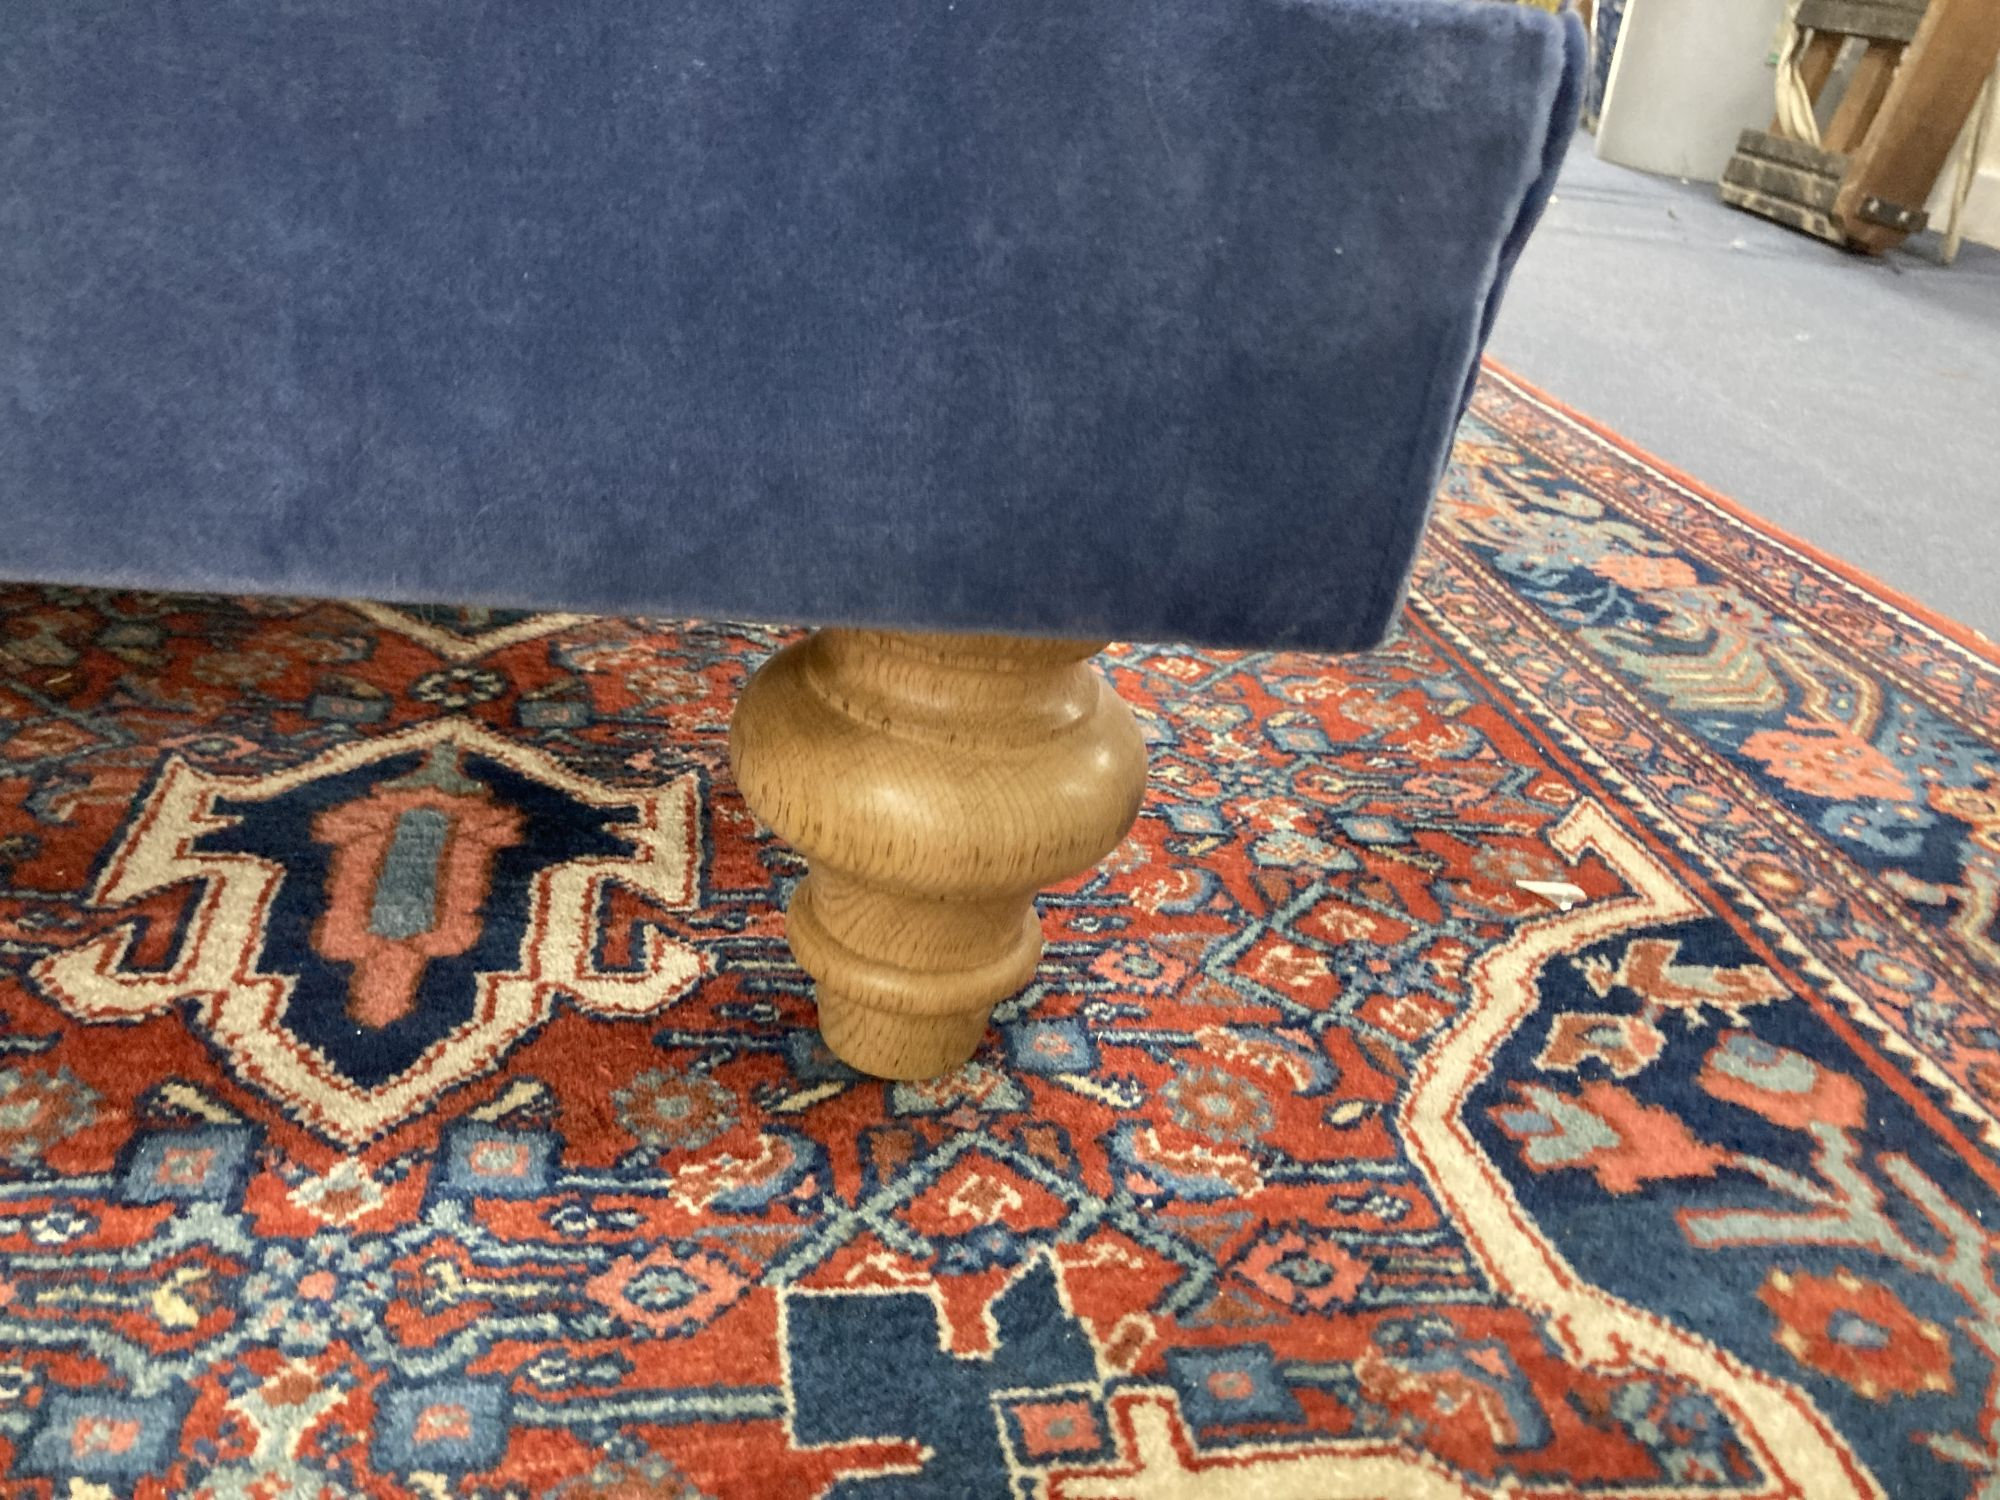 A rectangular Victorian style woven topped foot stool, length 106cm, depth 94cm, height 32cm - Image 3 of 3